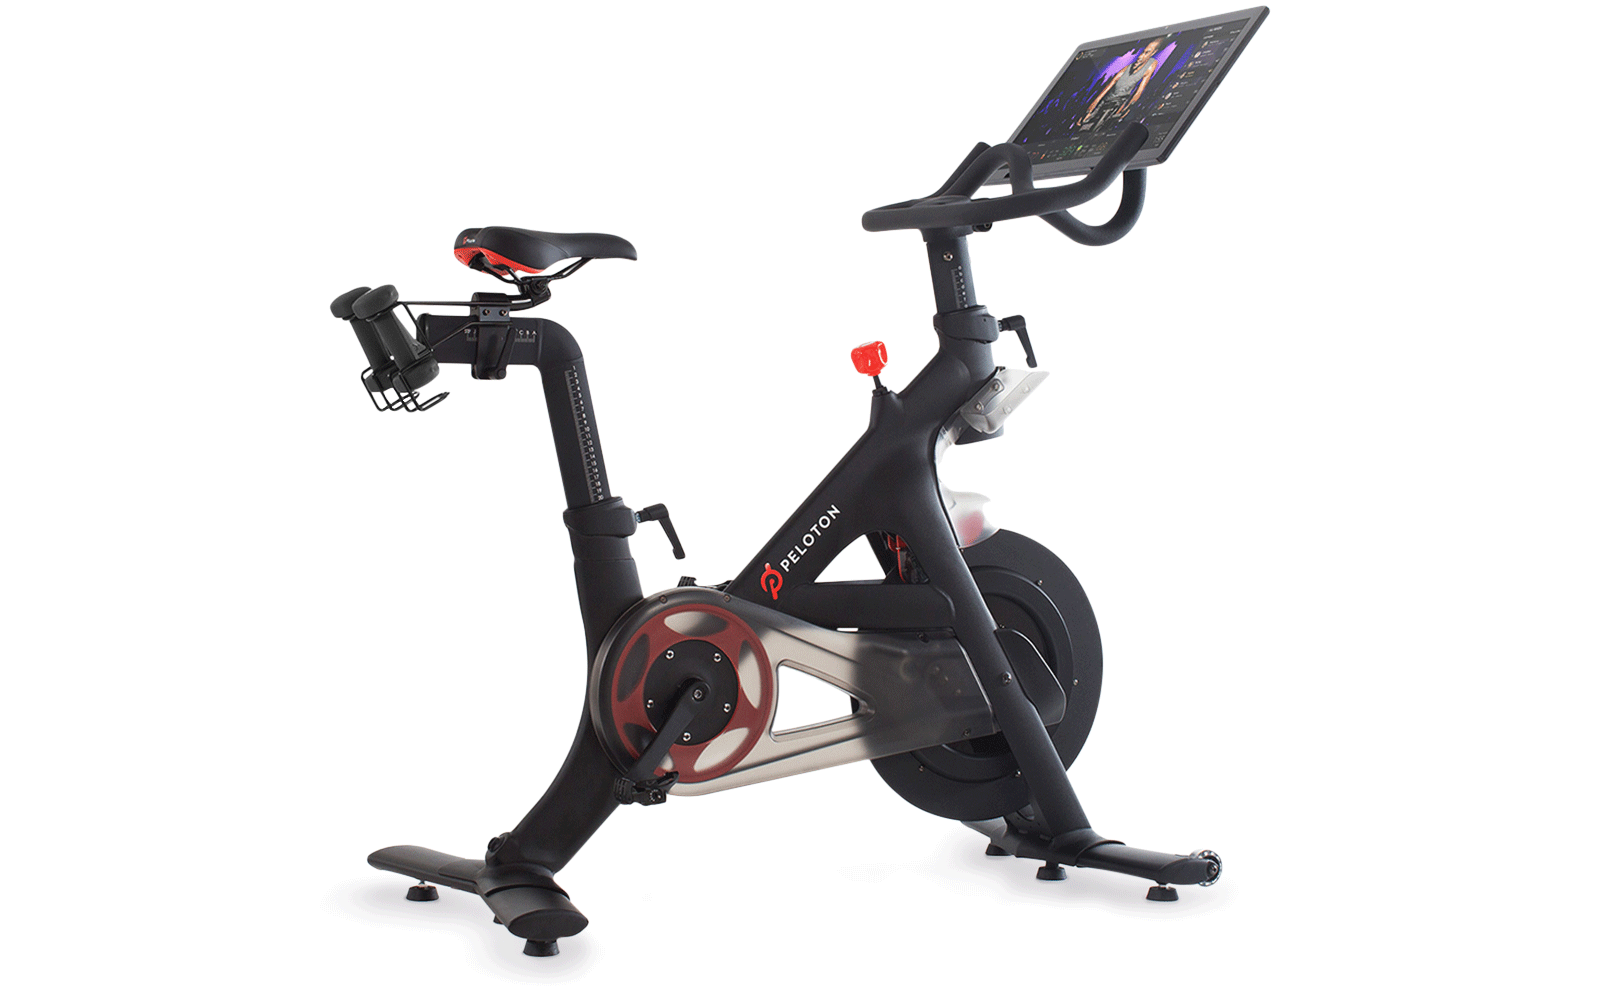 FlapJacked Get Fit, Get Fed Sweepstakes - Pelaton Bike